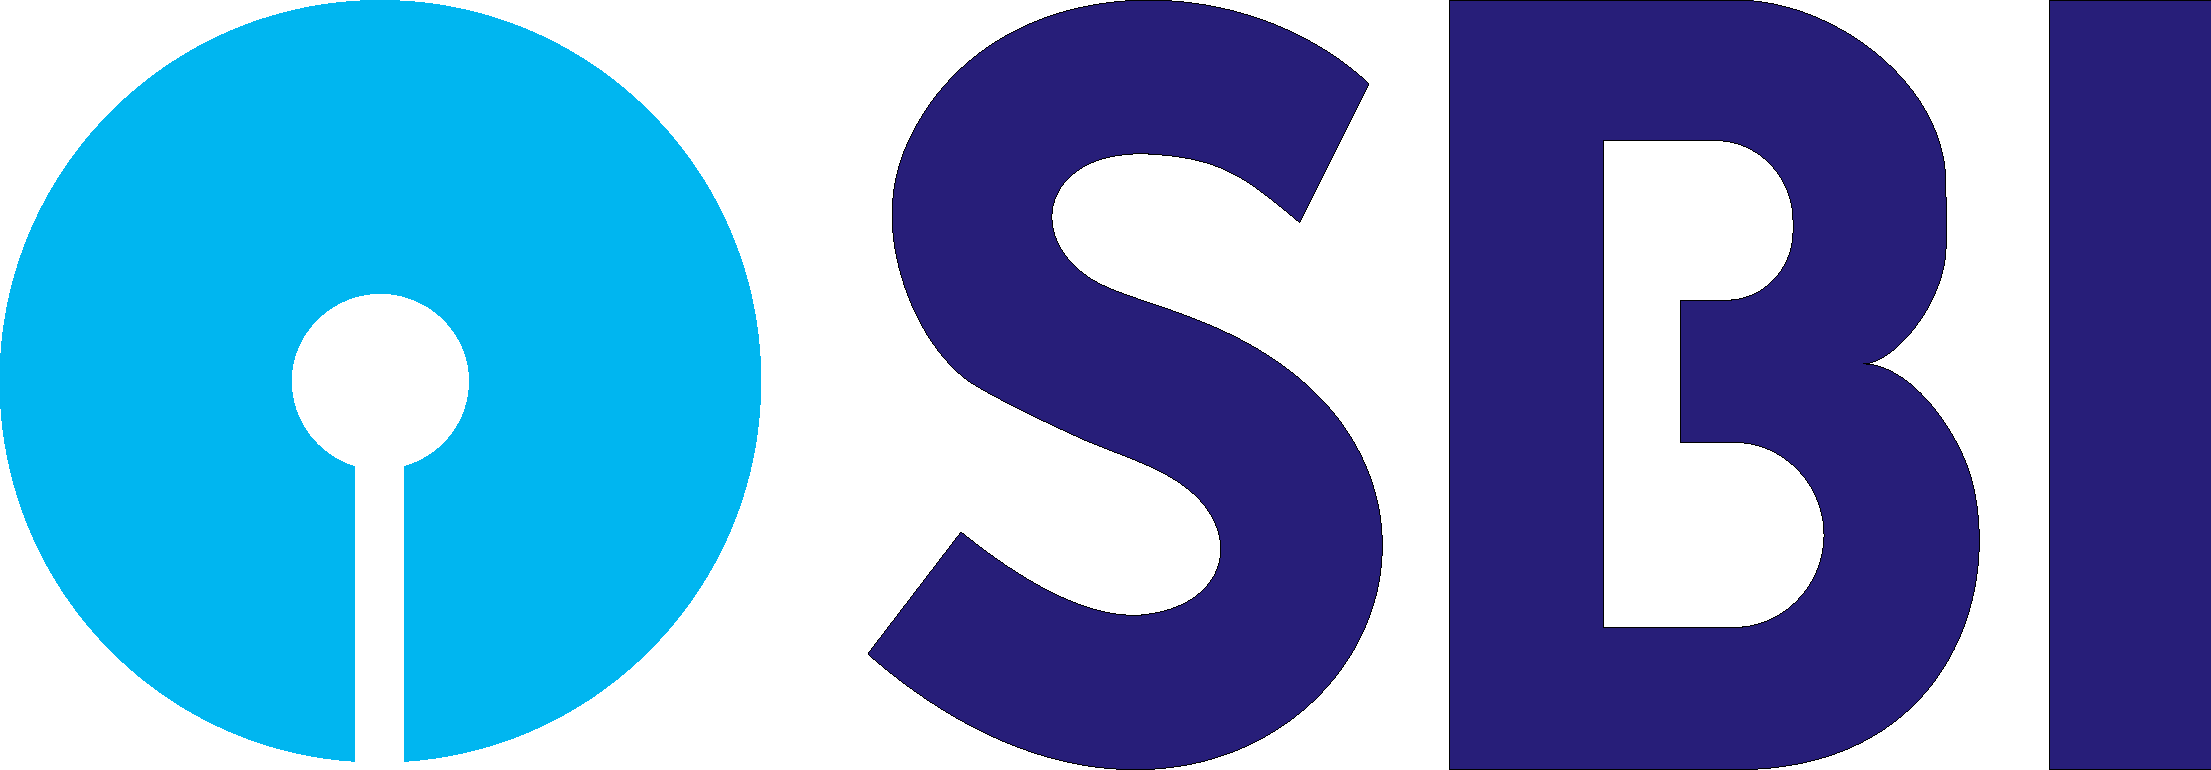 sbi logo [State Bank of India Group] Vector EPS Free.